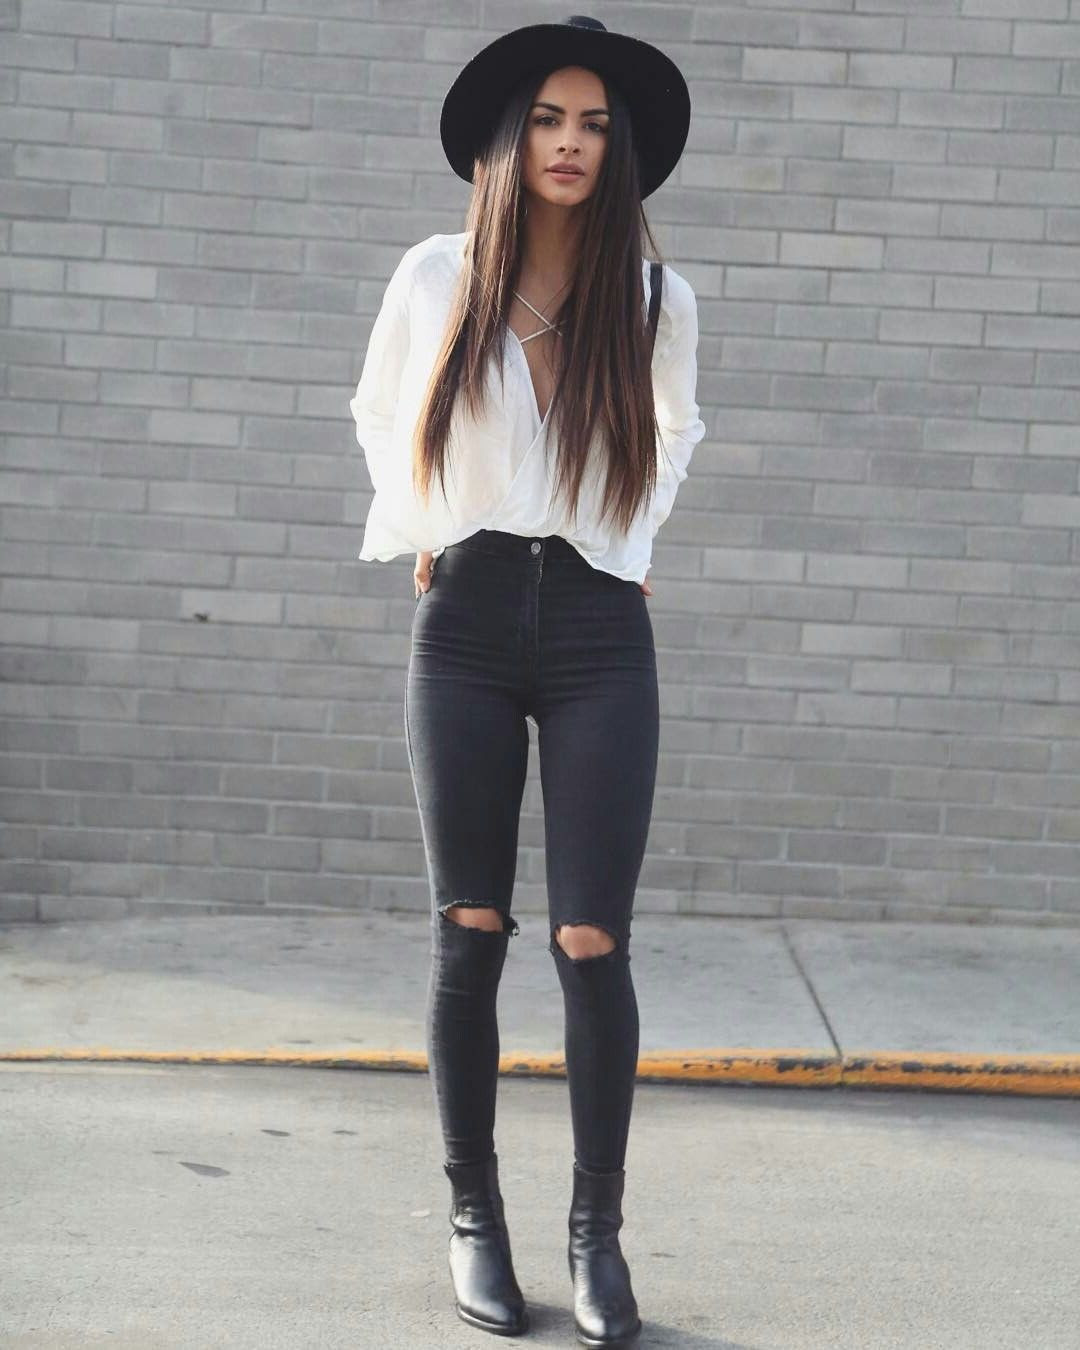 boho hipster girl outfit ideas 2020  fashiongum